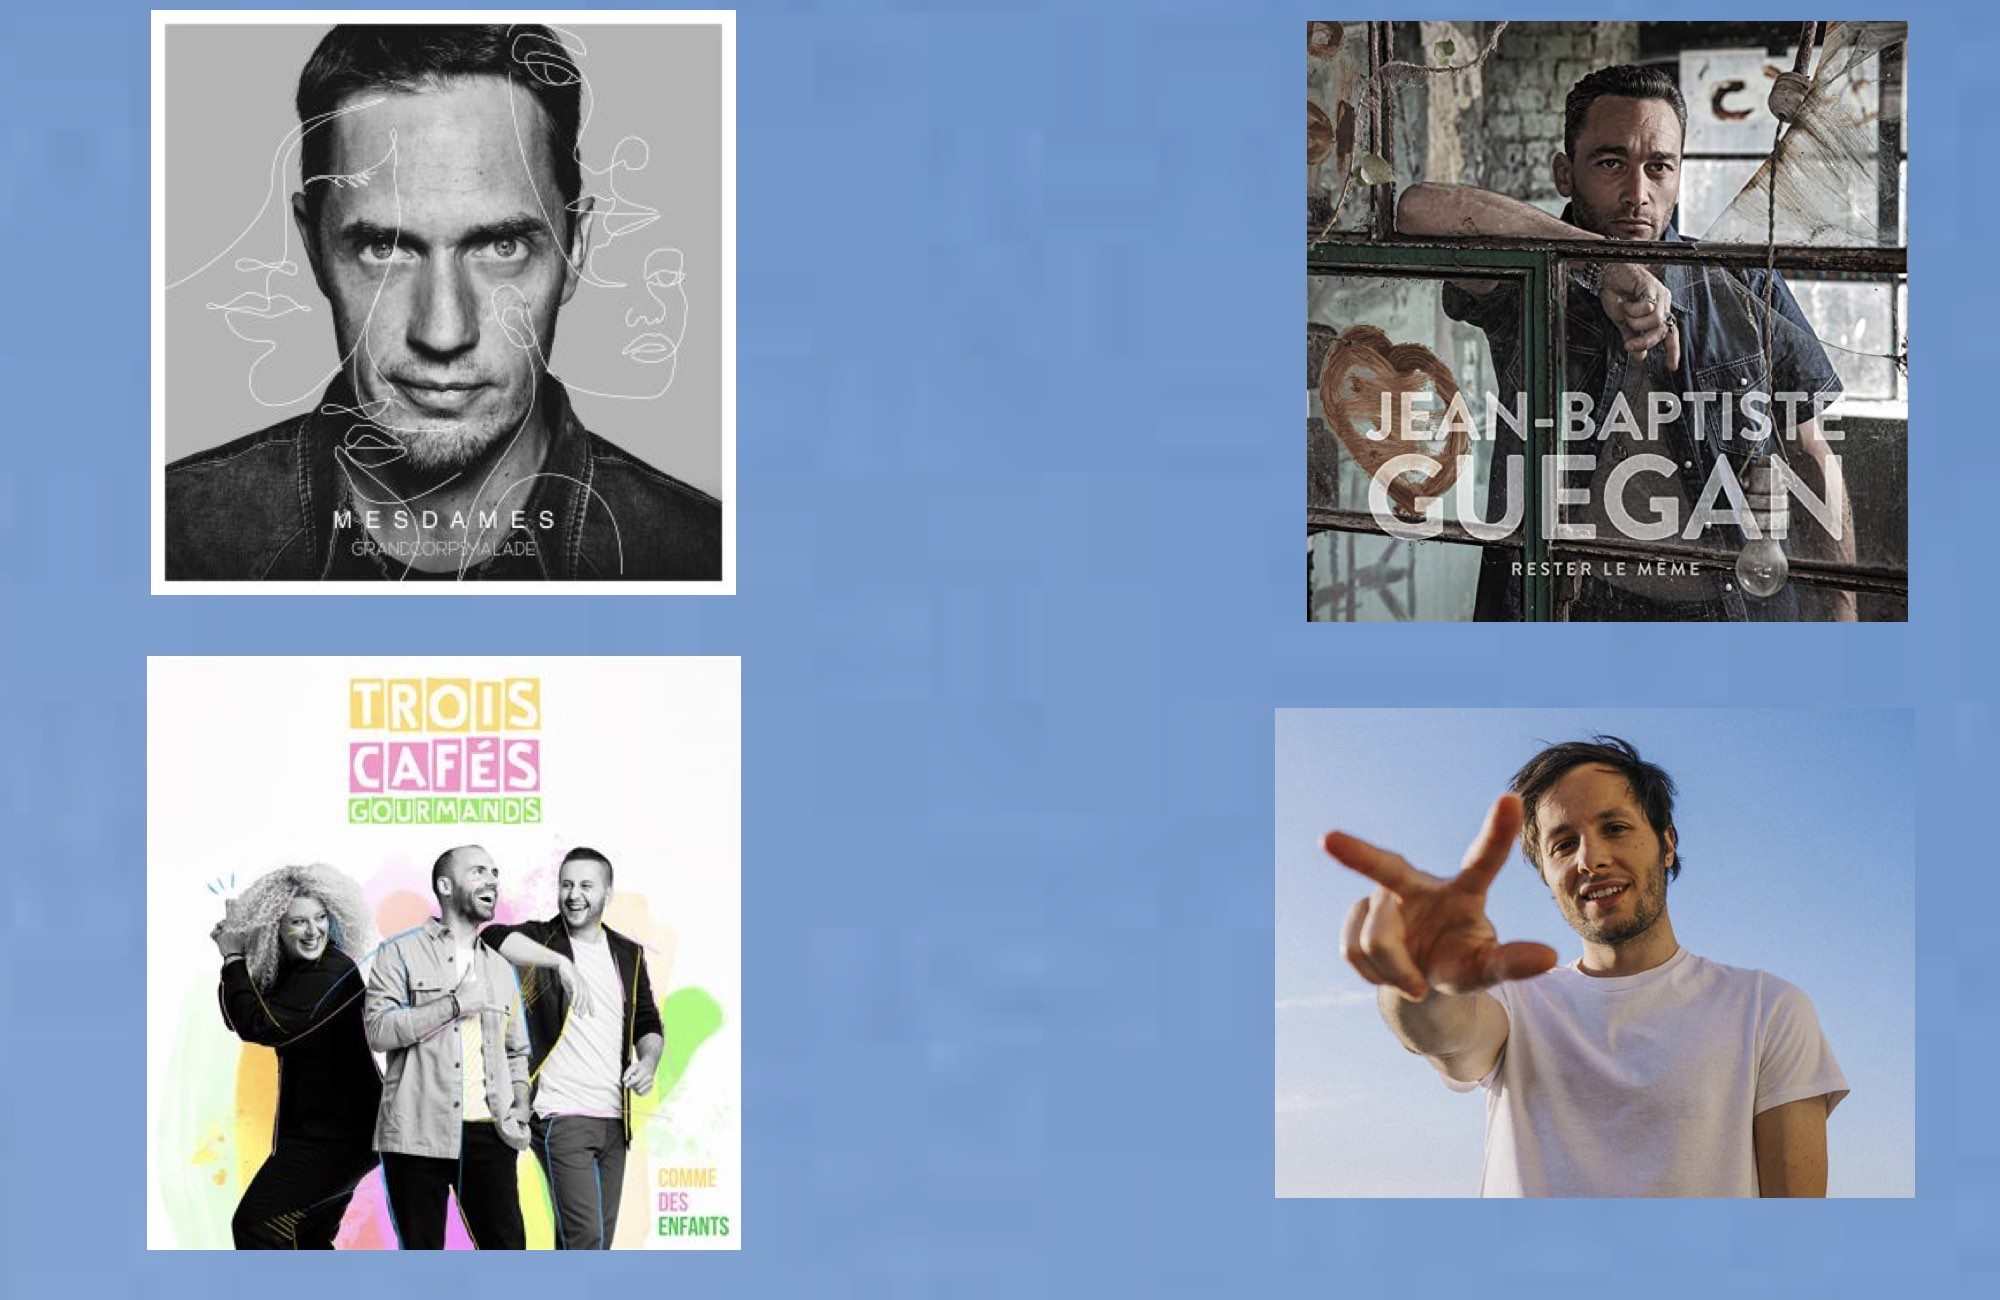 Sorties musicales - Grand corps malade - Jean Baptiste Guegan - Trois cafés gourmands - Vianney